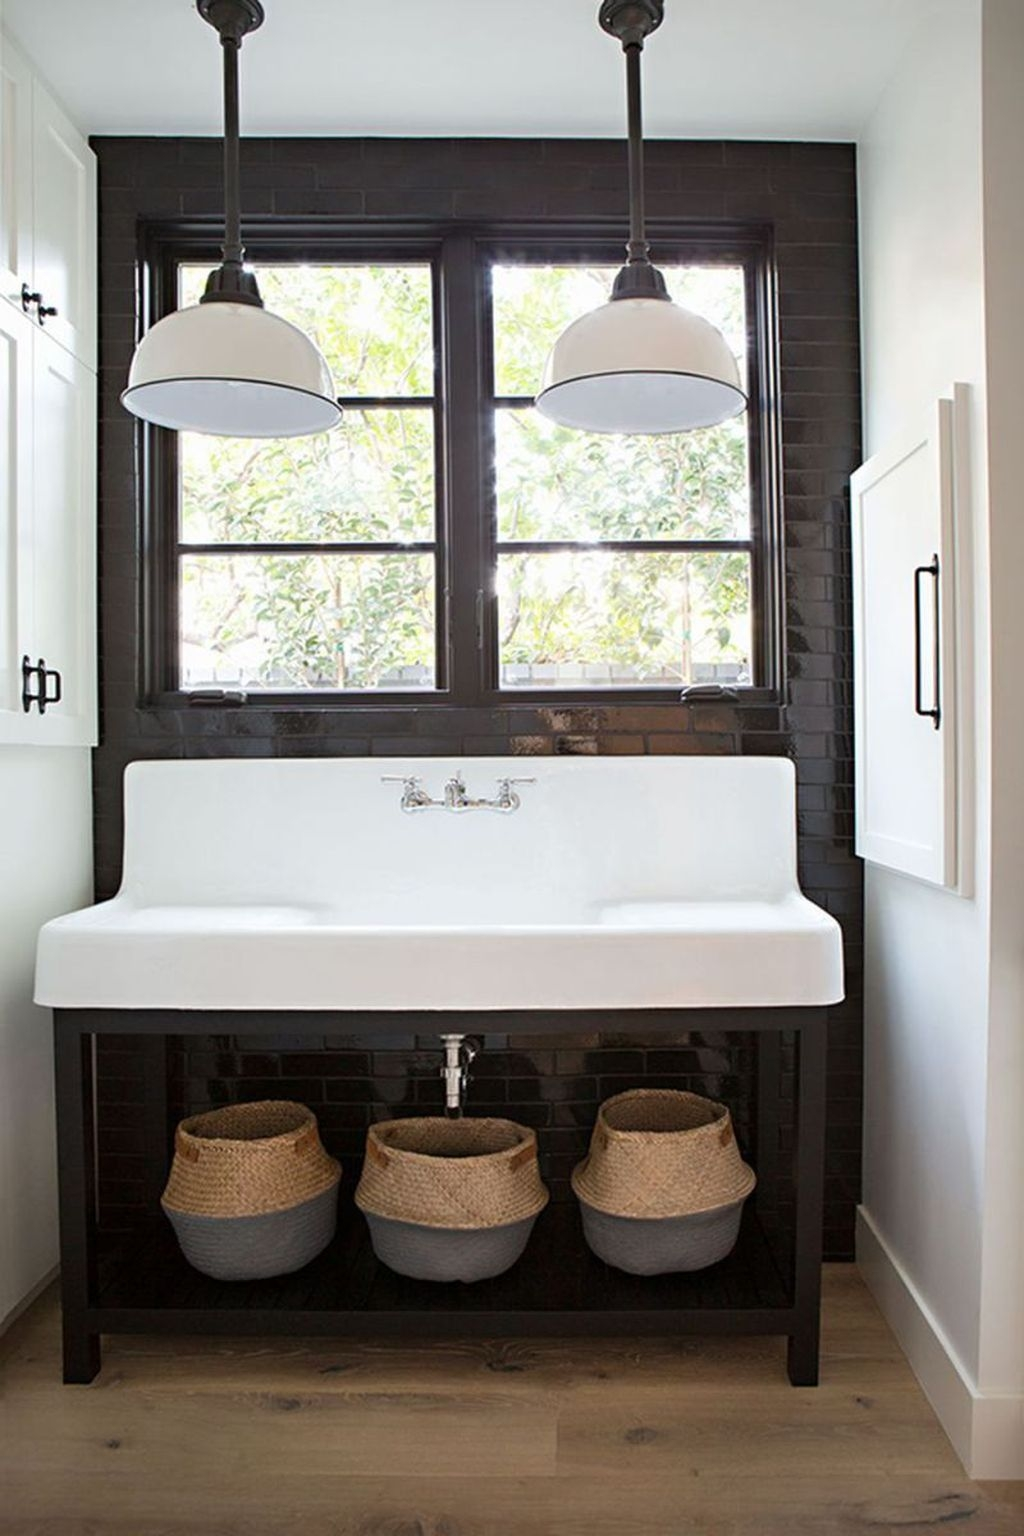 Cool Rustic Modern Bathroom Remodel Ideas 41